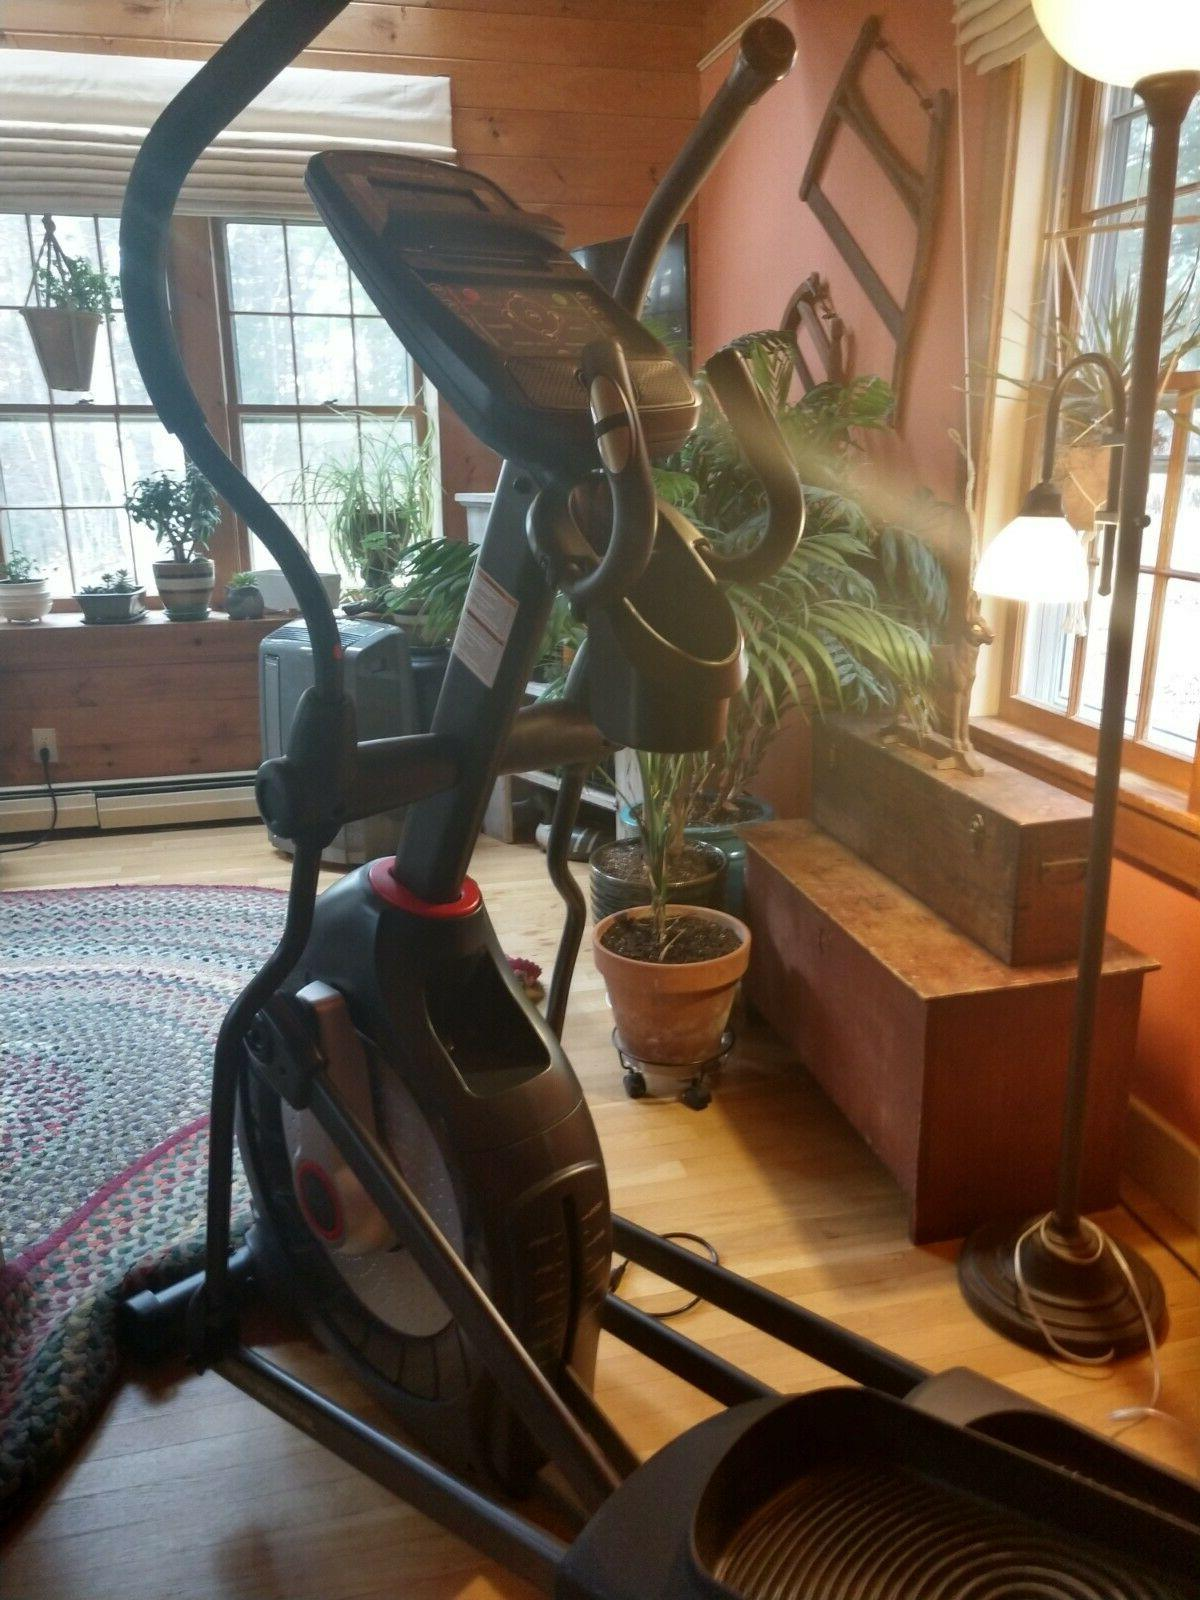 470 elliptical trainer